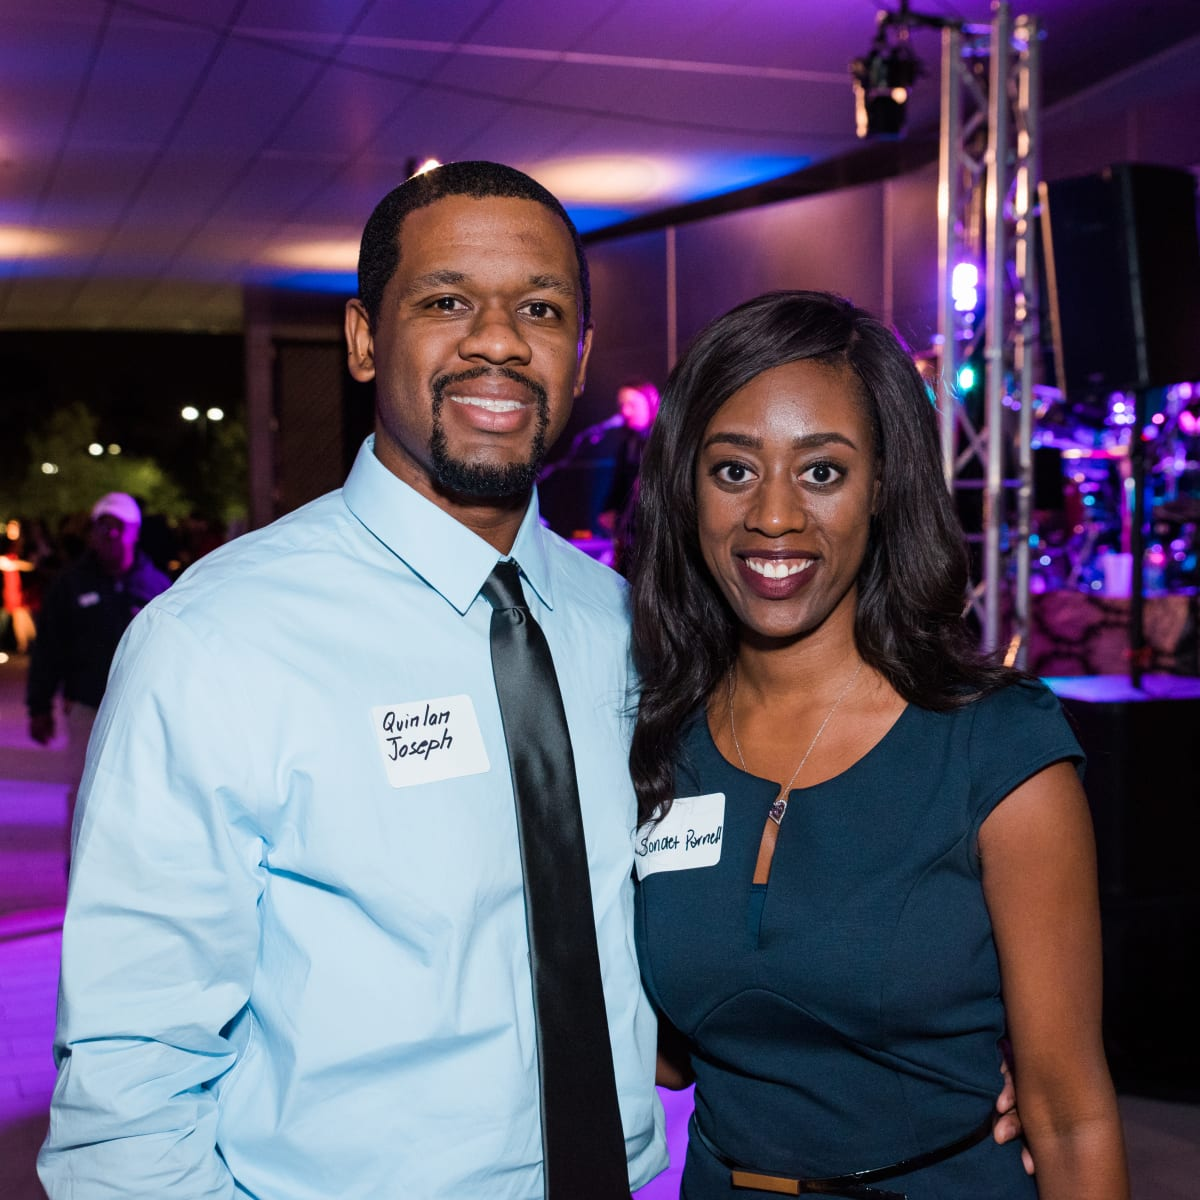 News, Houston Young Lawyers, holiday party, Dec. 2016, : Quinlam Joseph, Sondet Parnell